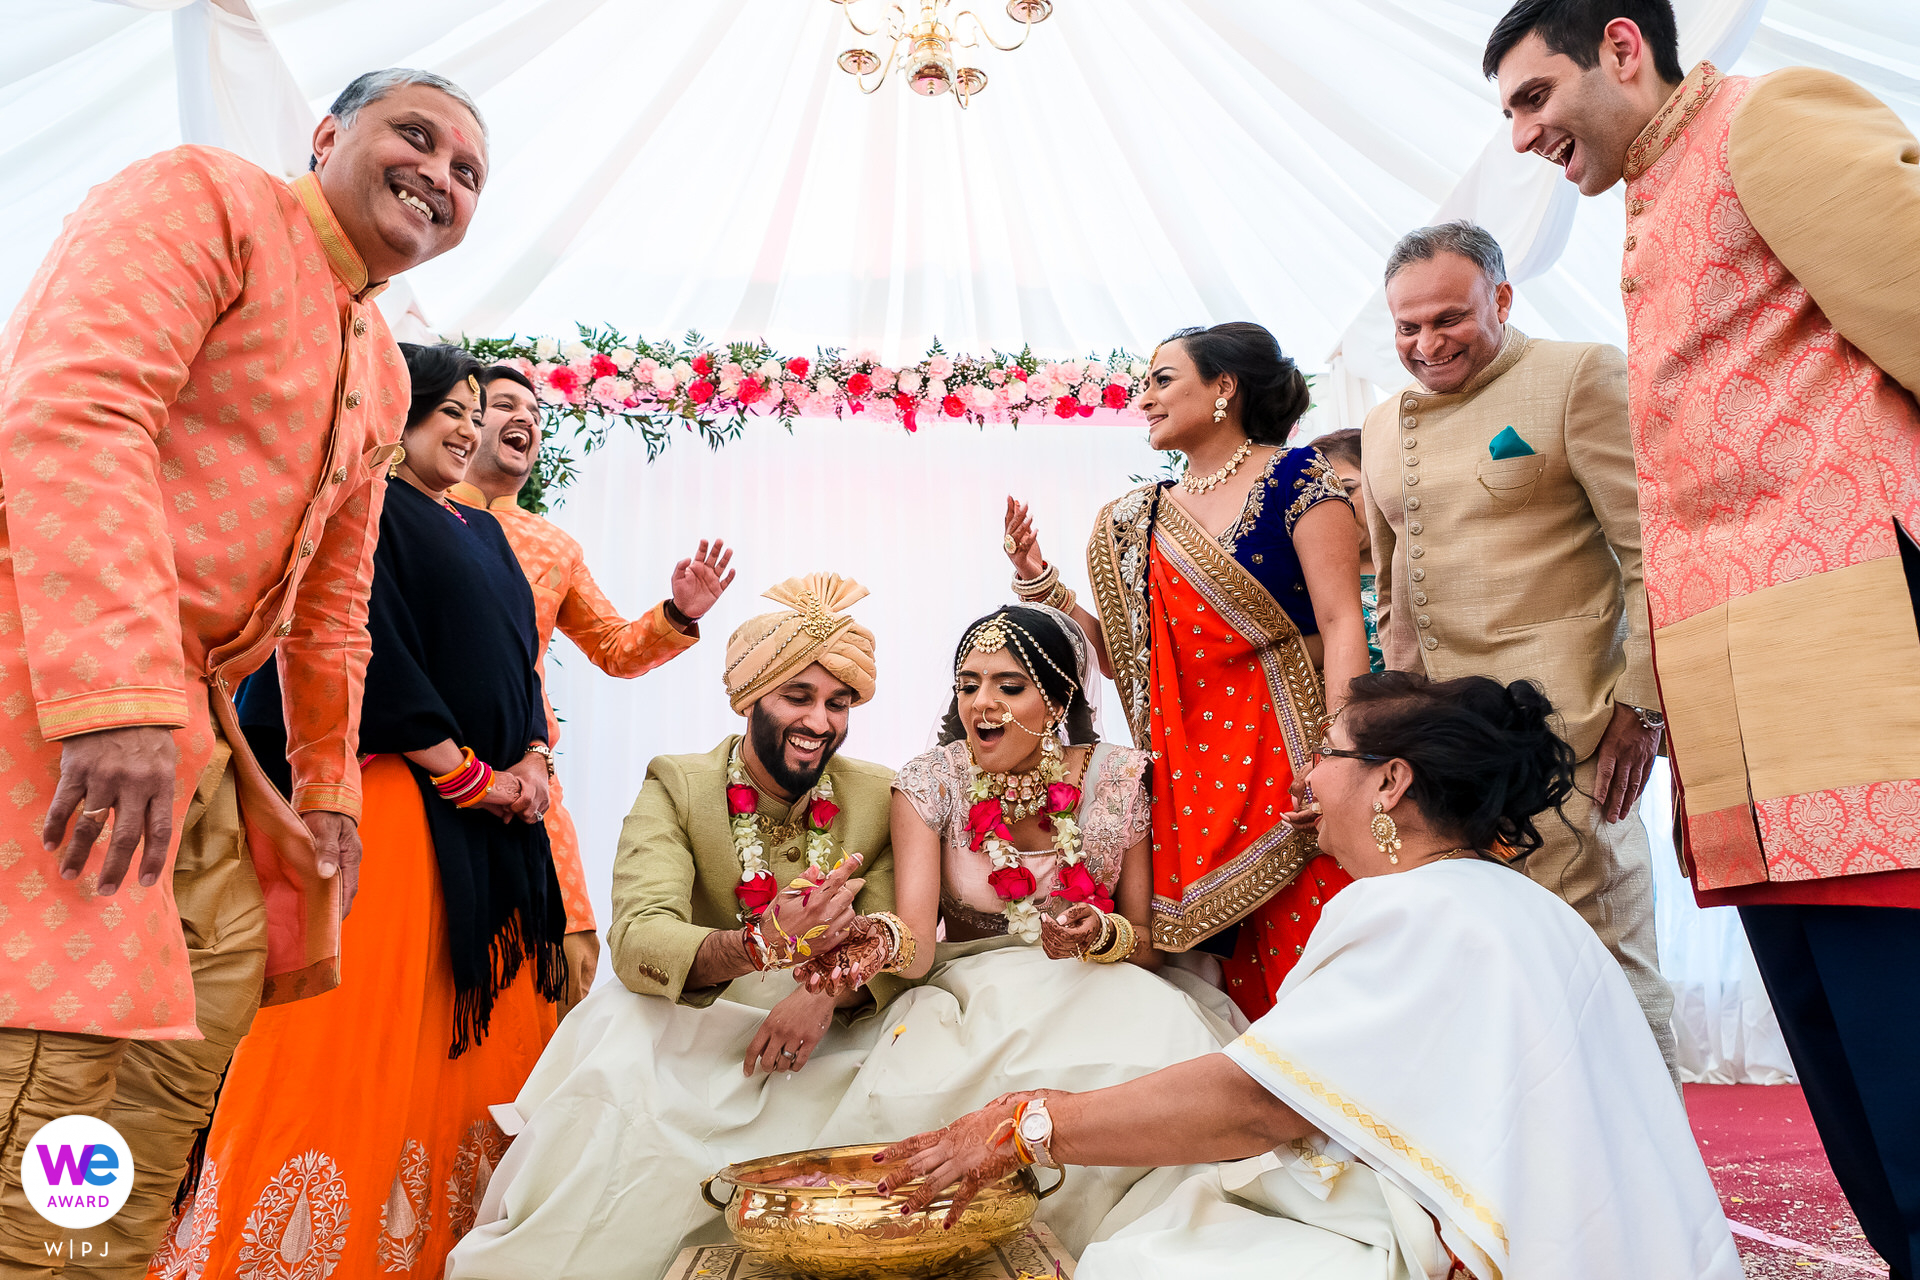 London, UK Indian Wedding Elopement Photography | Koda Kodi - The aim of the game is to find the ring first, using one hand